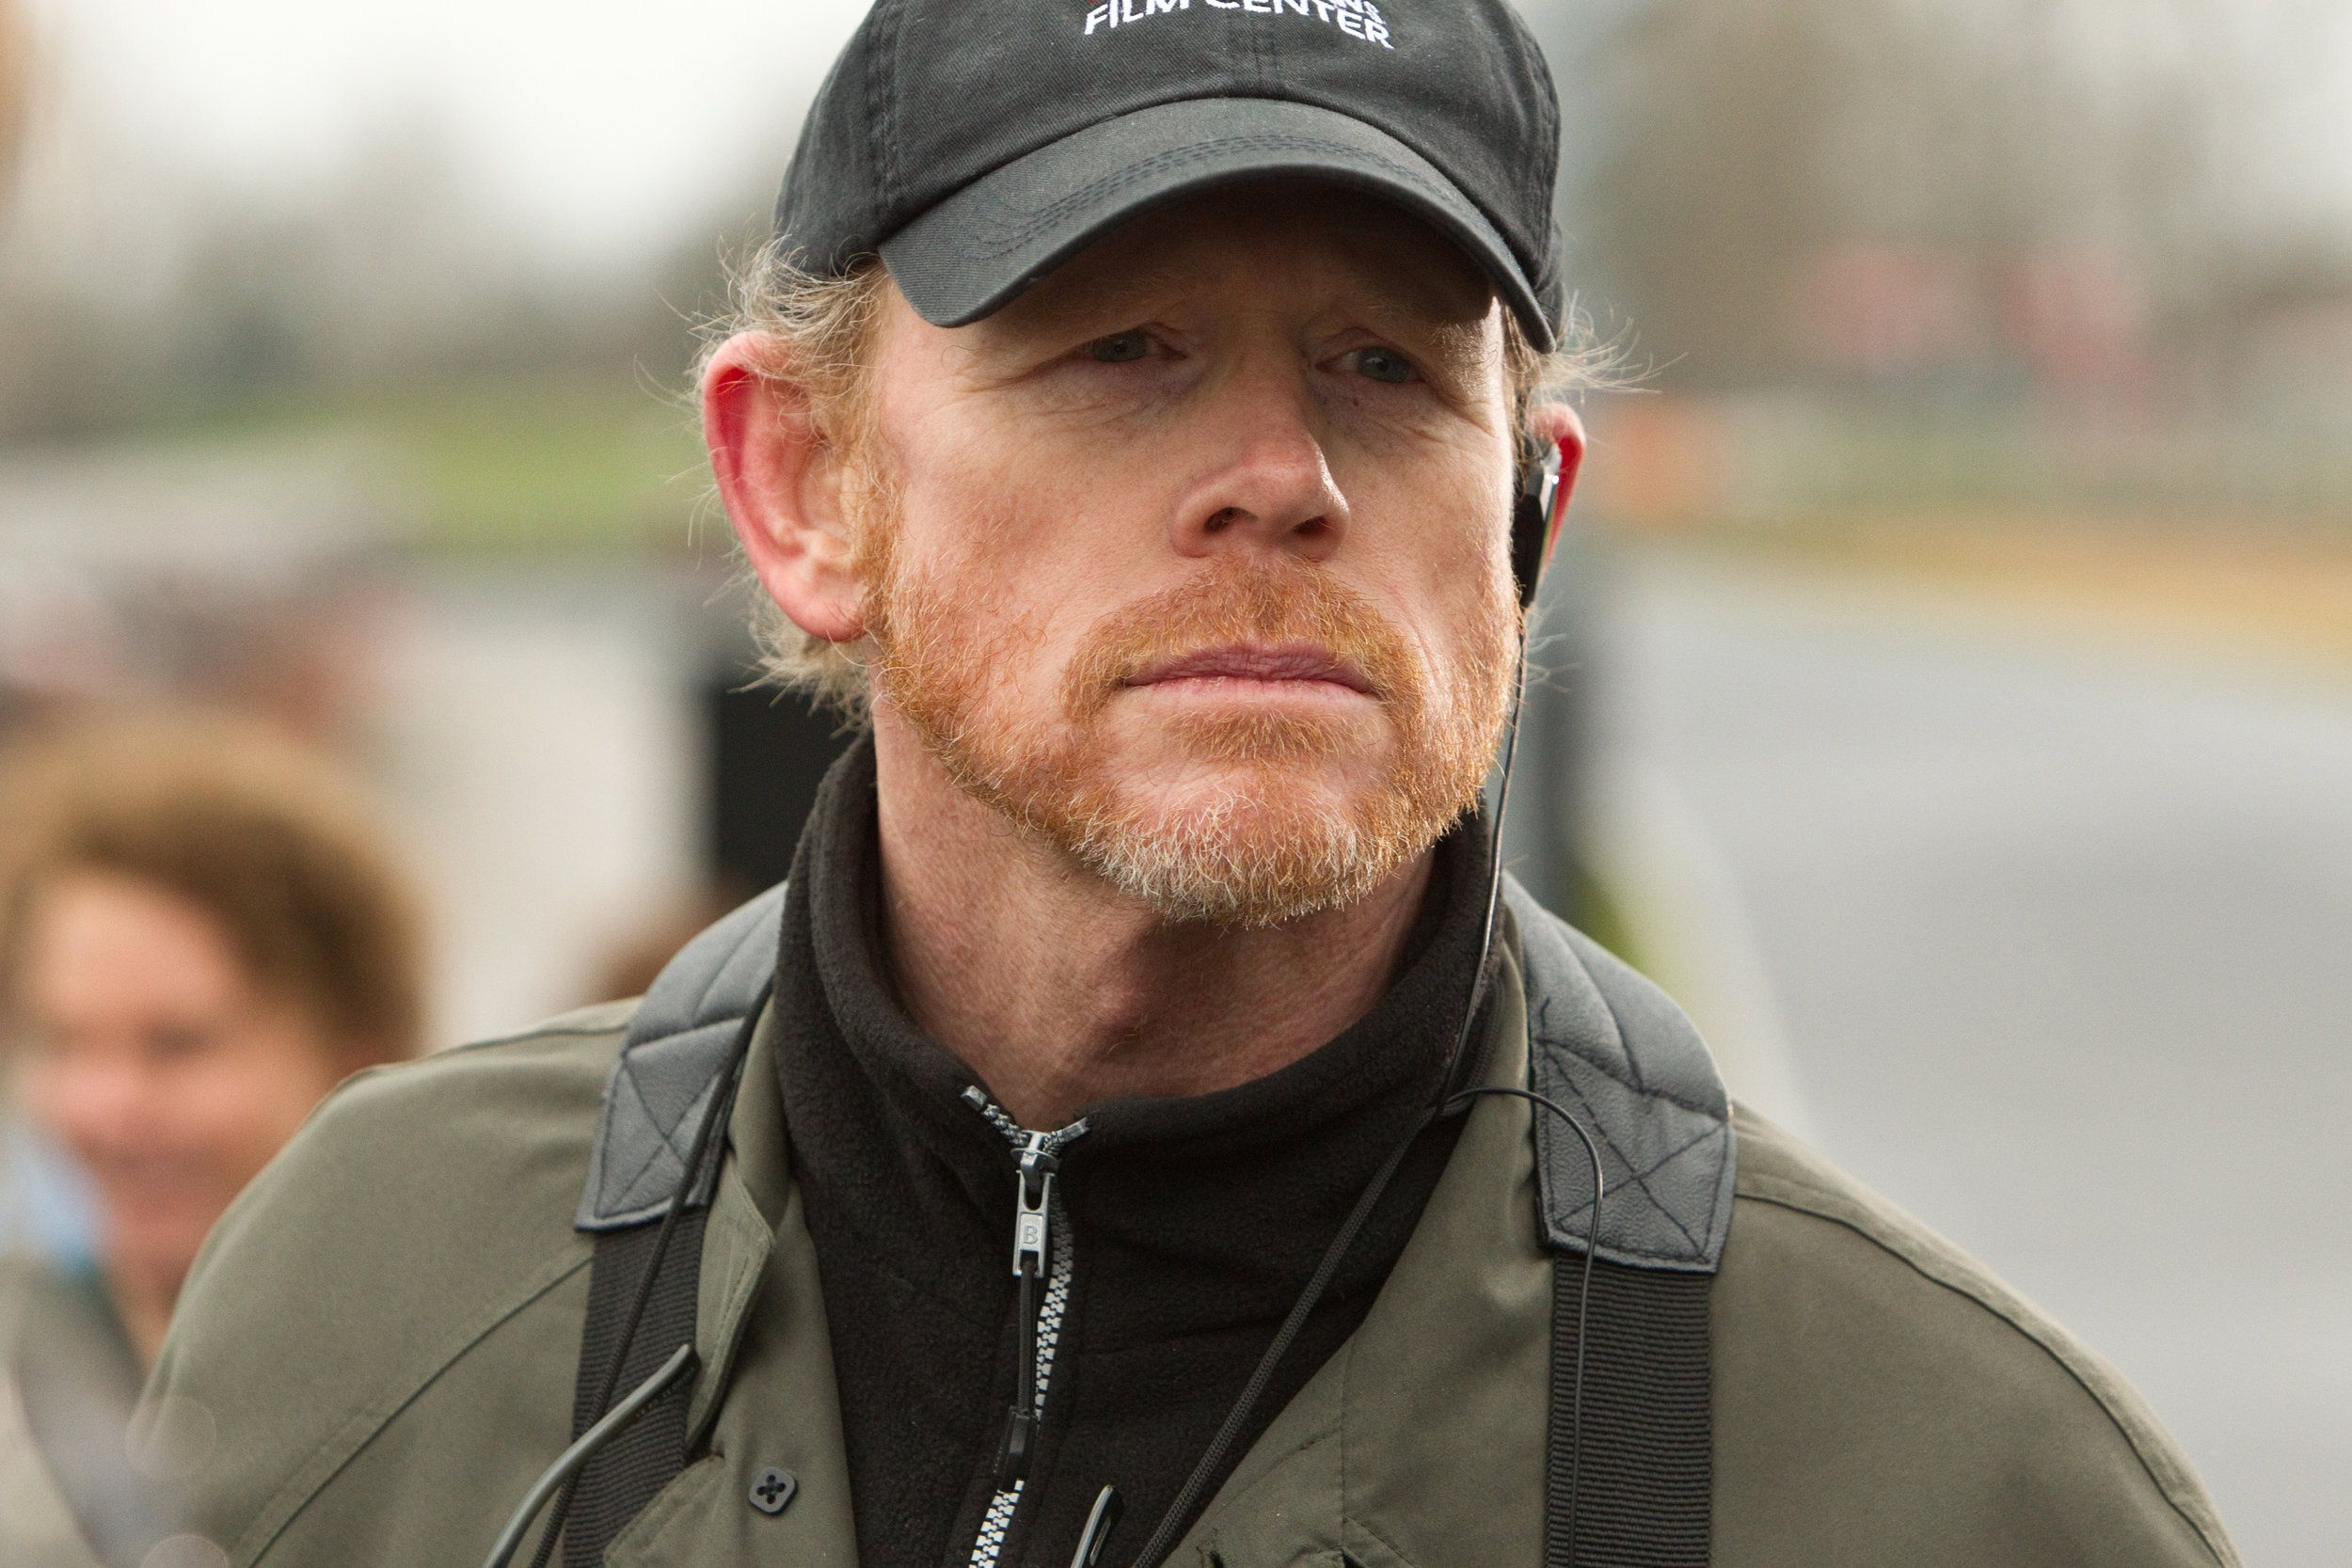 Ron Howard is the new director for HAN SOLO  https://www.geekbroadside.com/blog/2017/6/22/ron-howard-is-the-new-director-for-han-solo